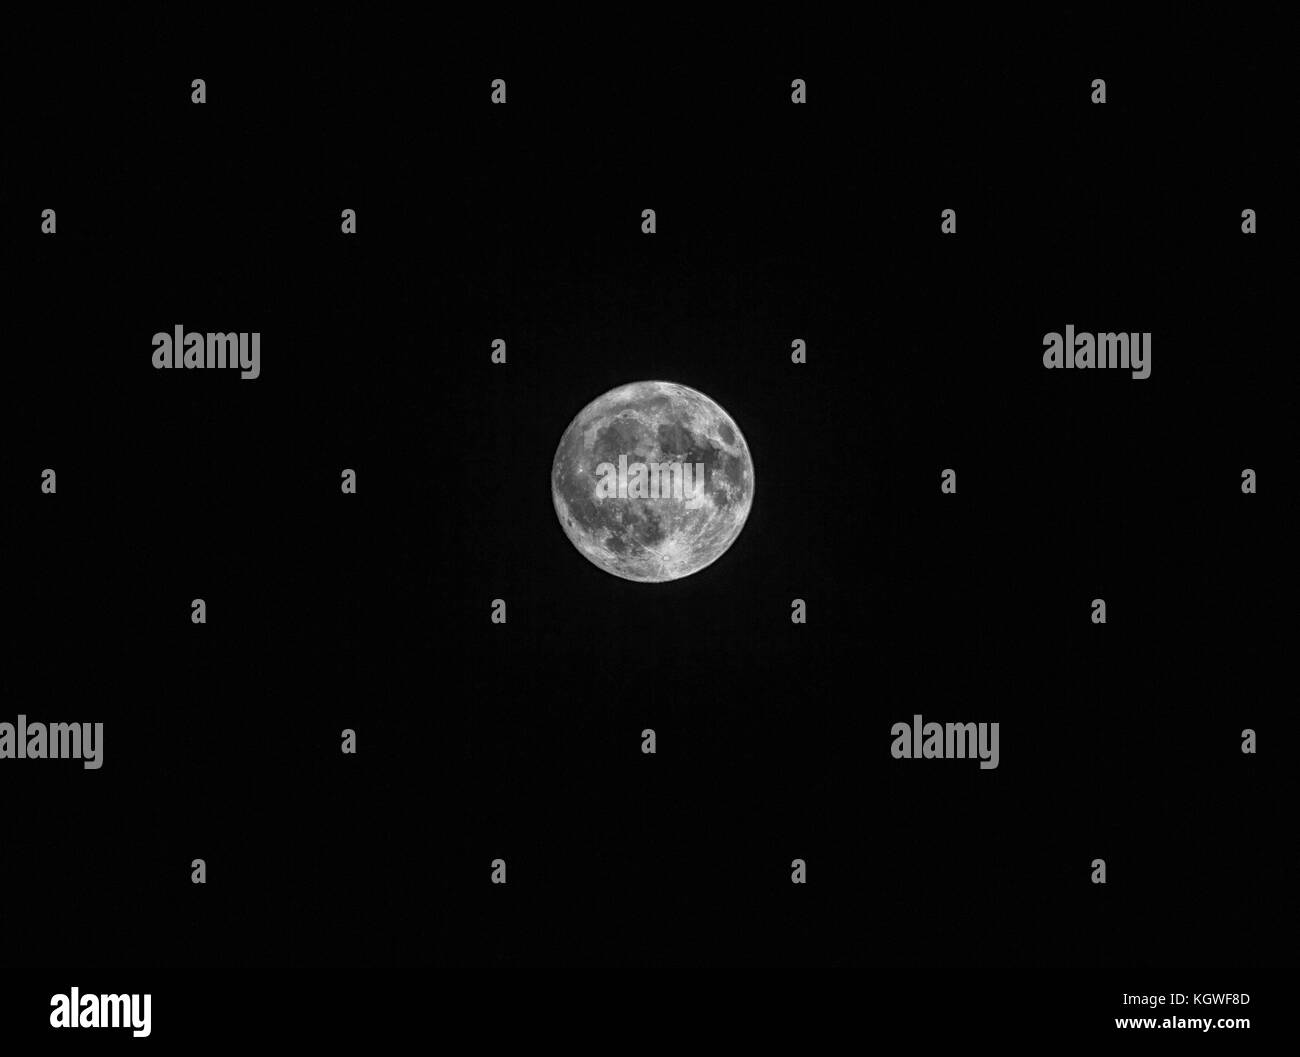 fool moon at night black background at russia in 2017 year - Stock Image